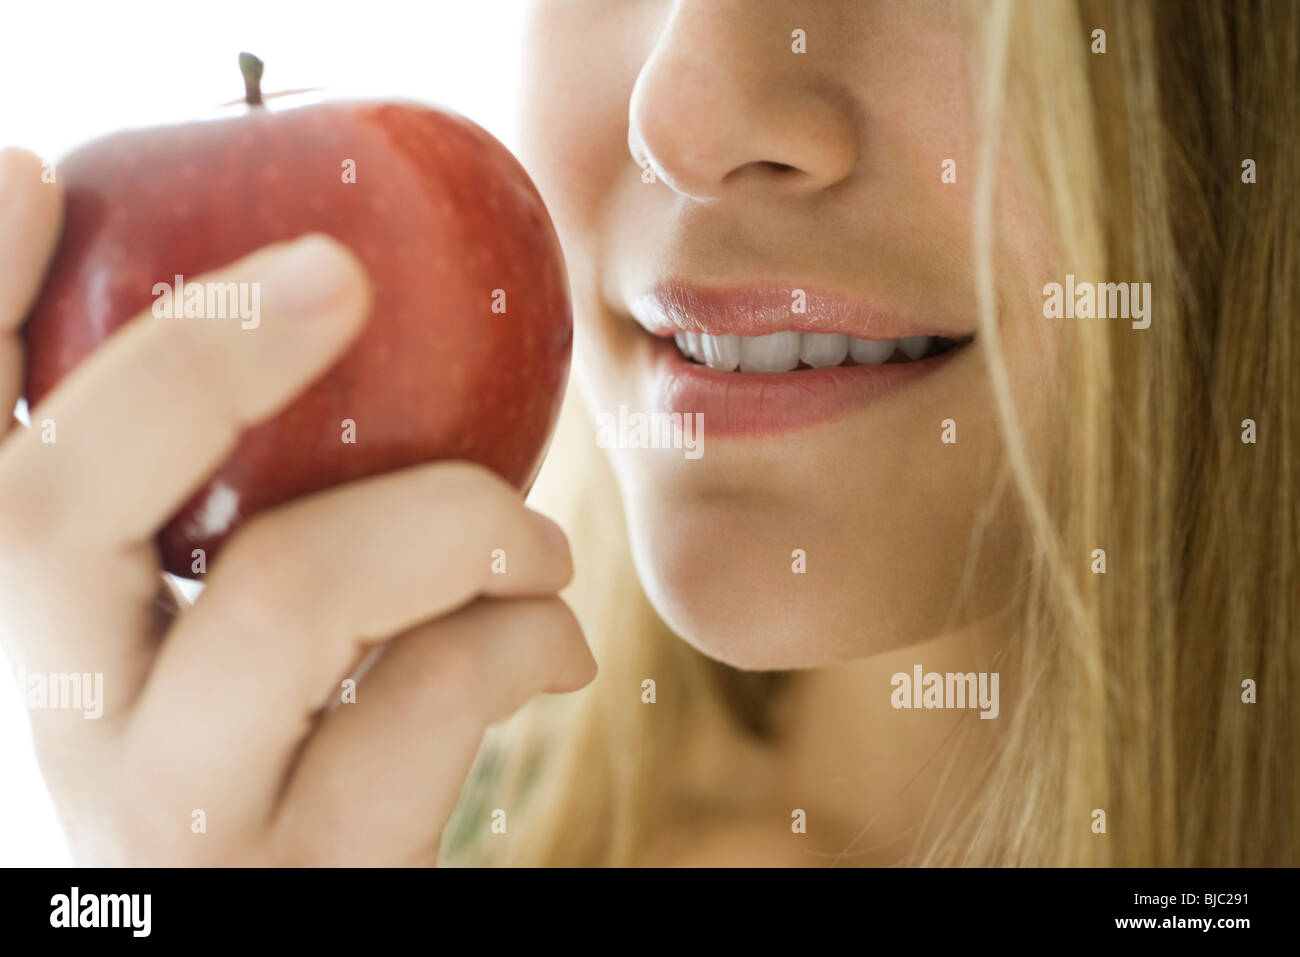 Young woman eating apple, close-up - Stock Image